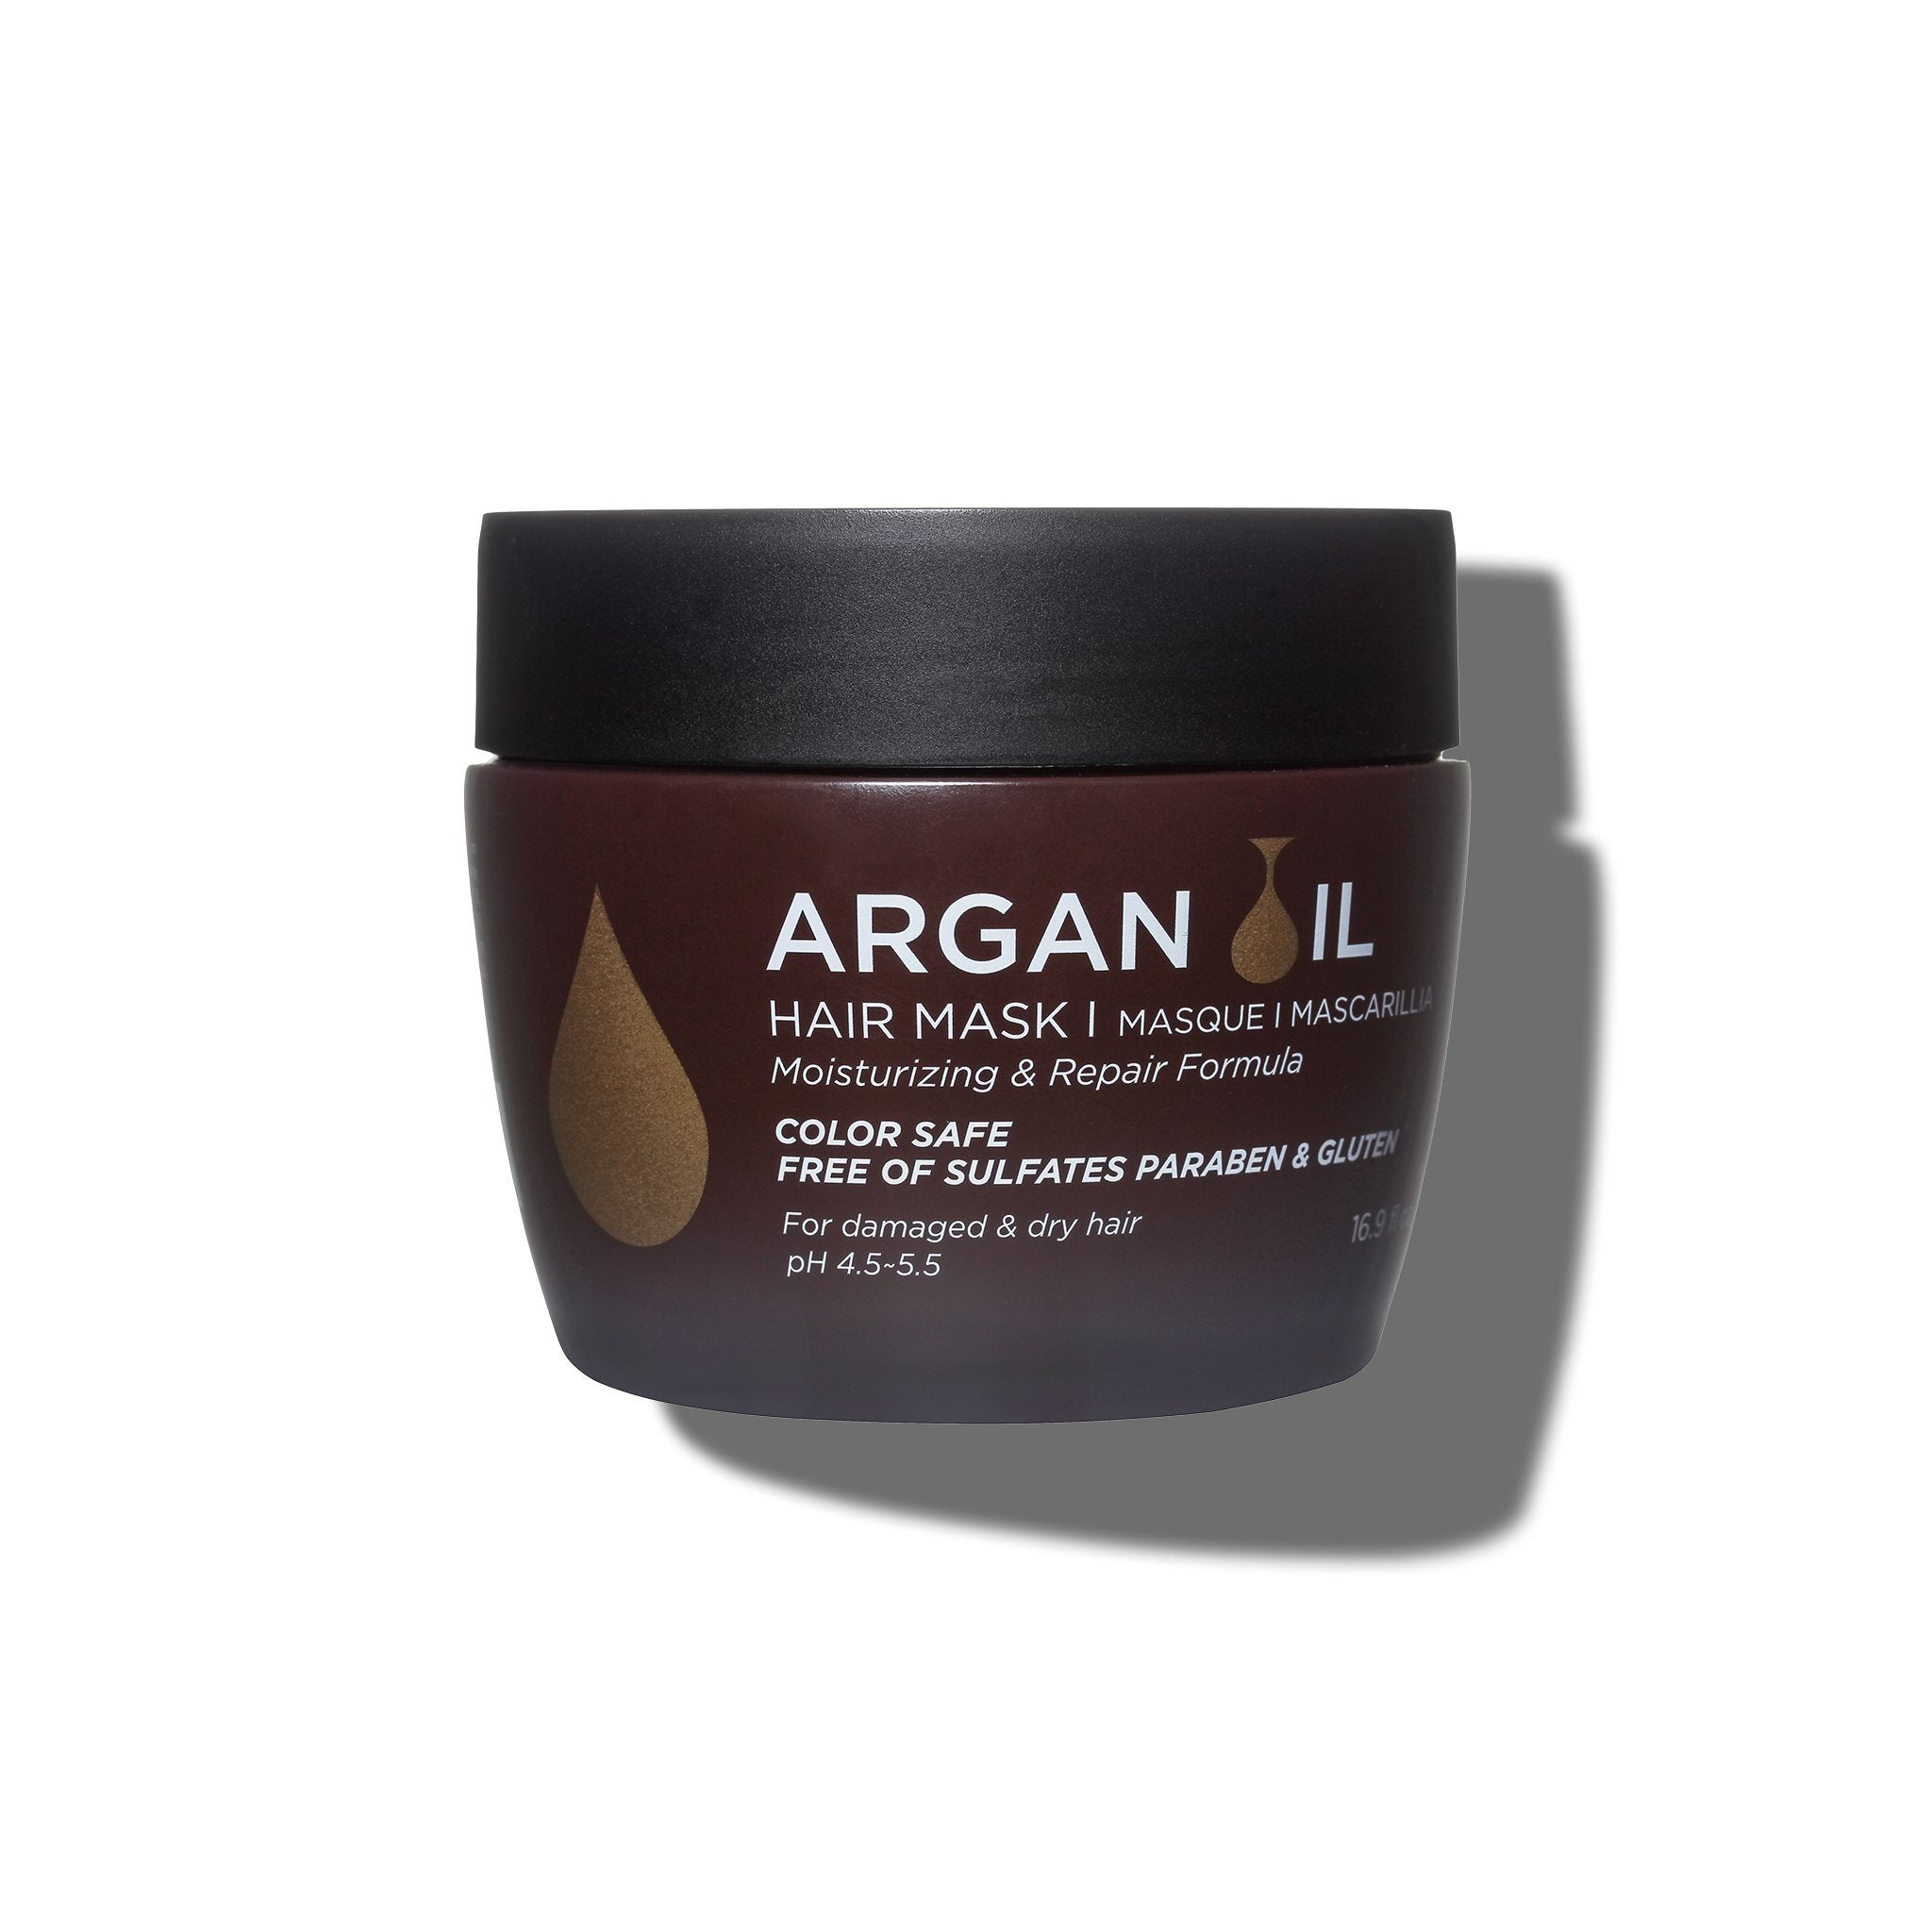 Arganl Oil Hair Mask